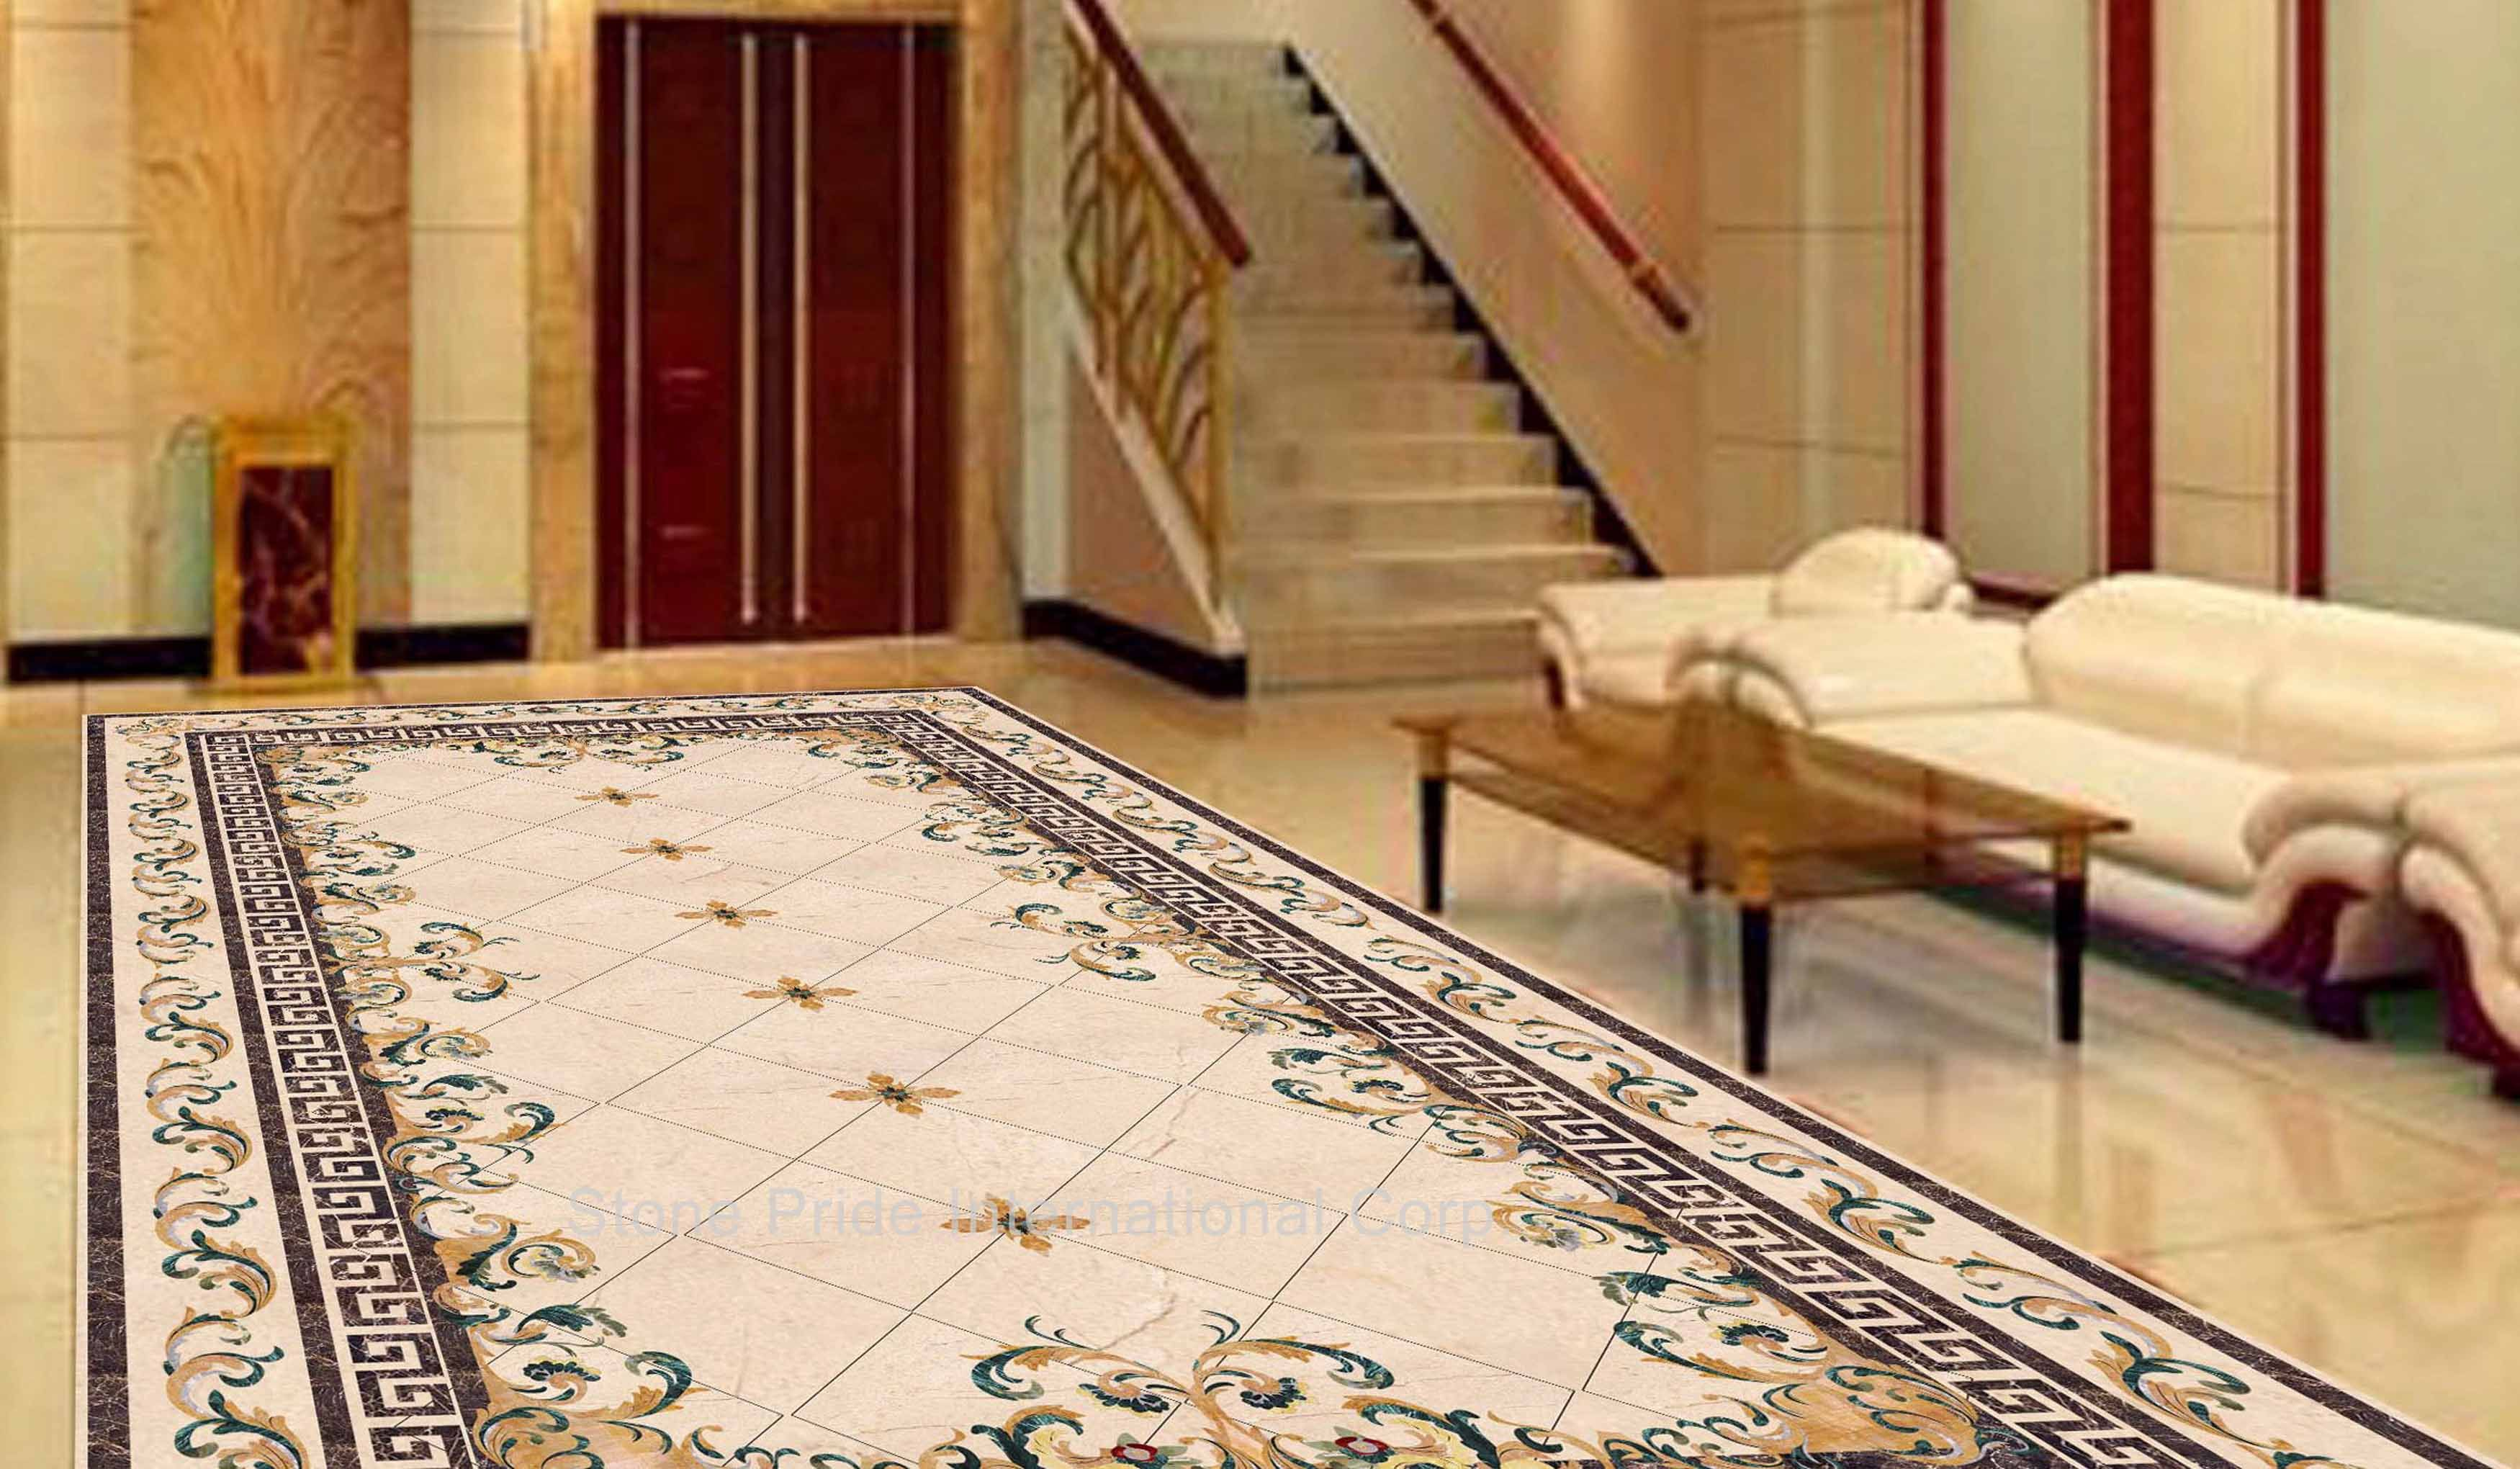 Top 18 fabulous floor design ideas interior design pinterest marble flooring tile design ideas for rectangular living room dailygadgetfo Image collections